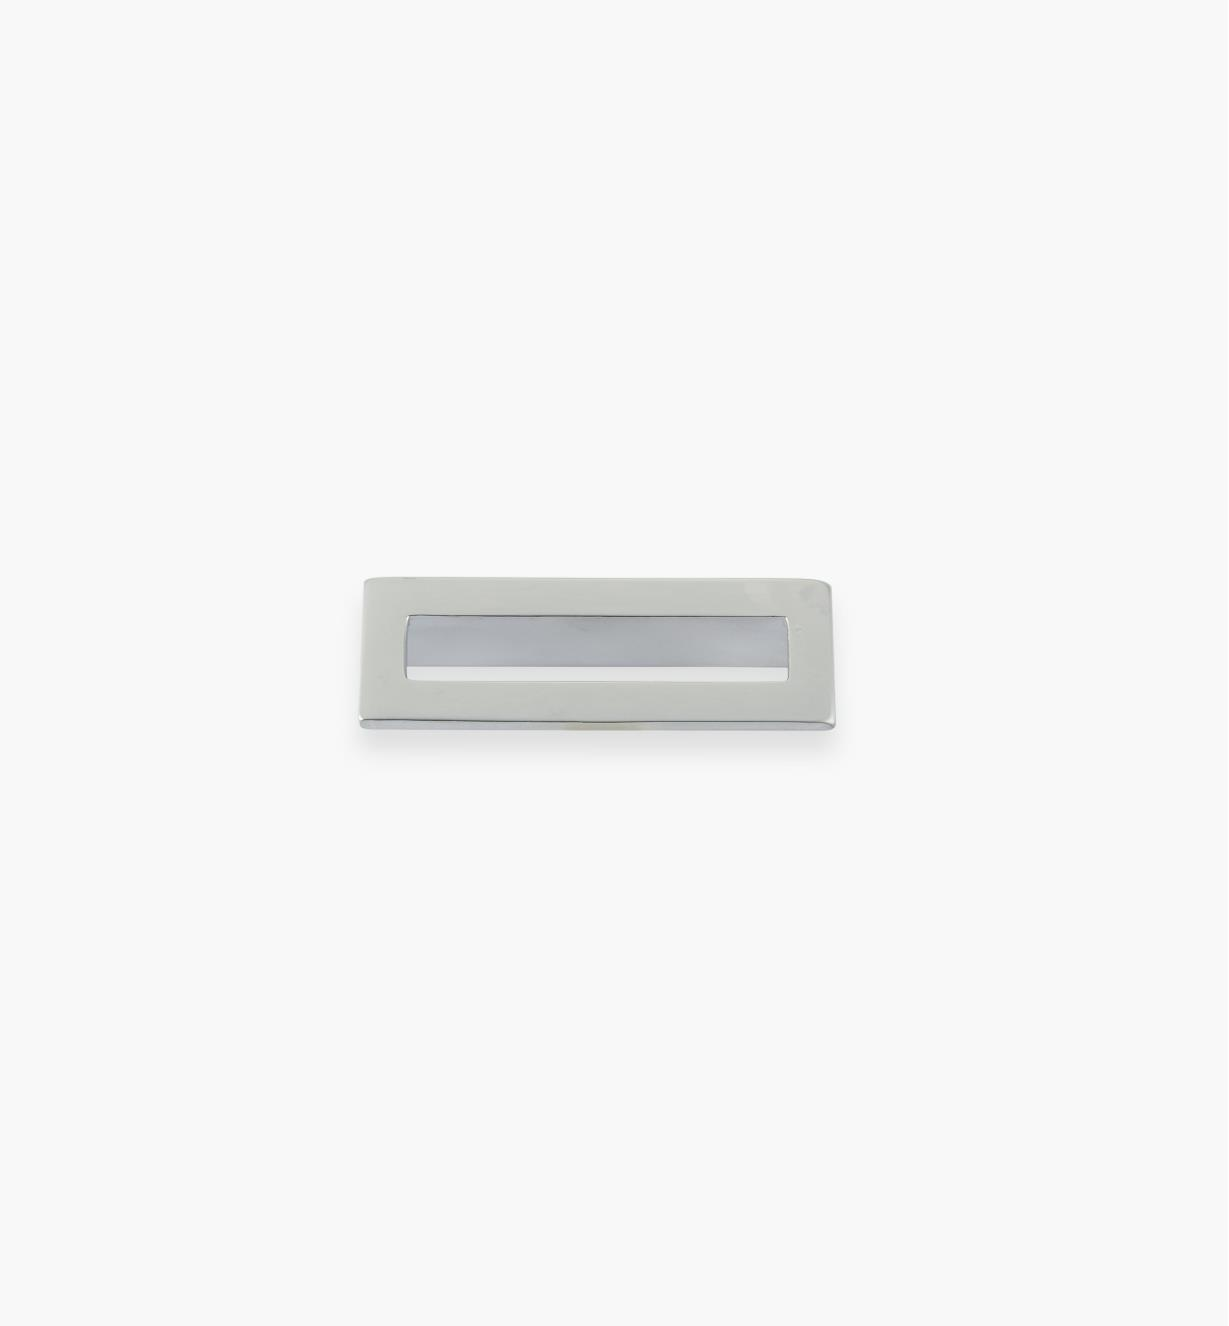 01G1892 - 64mm x 70mm Matte Chrome Core Handle, each